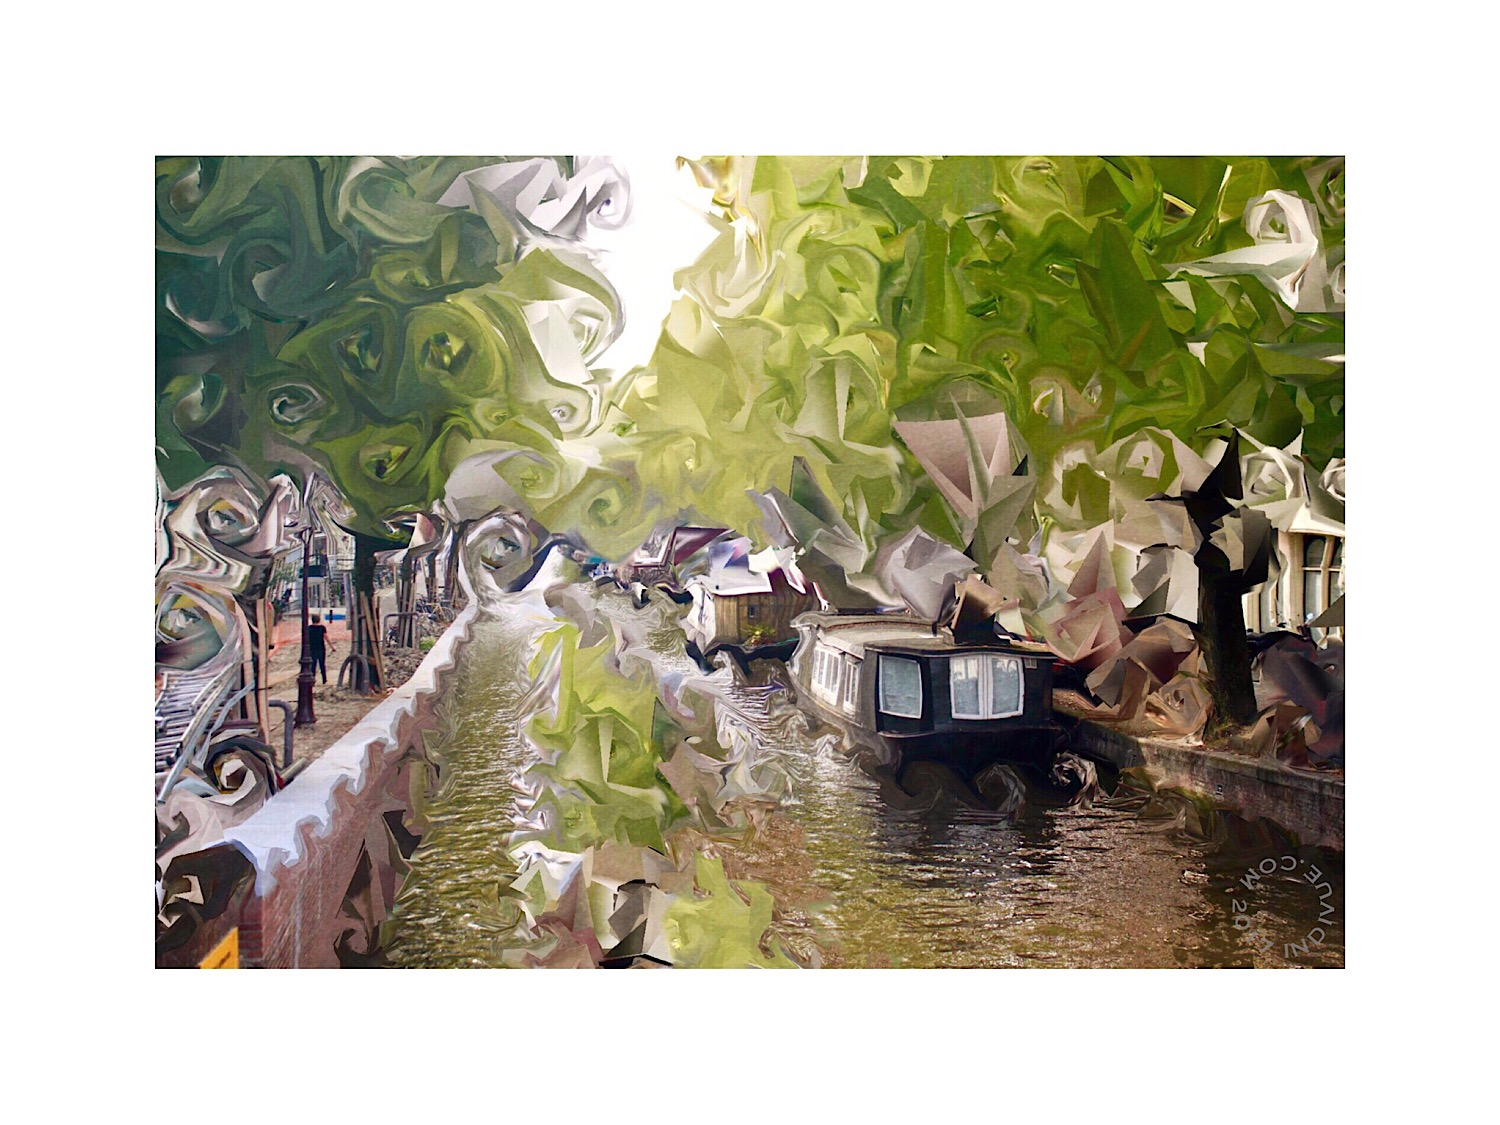 Photopainting inspired by Amsterdam canals